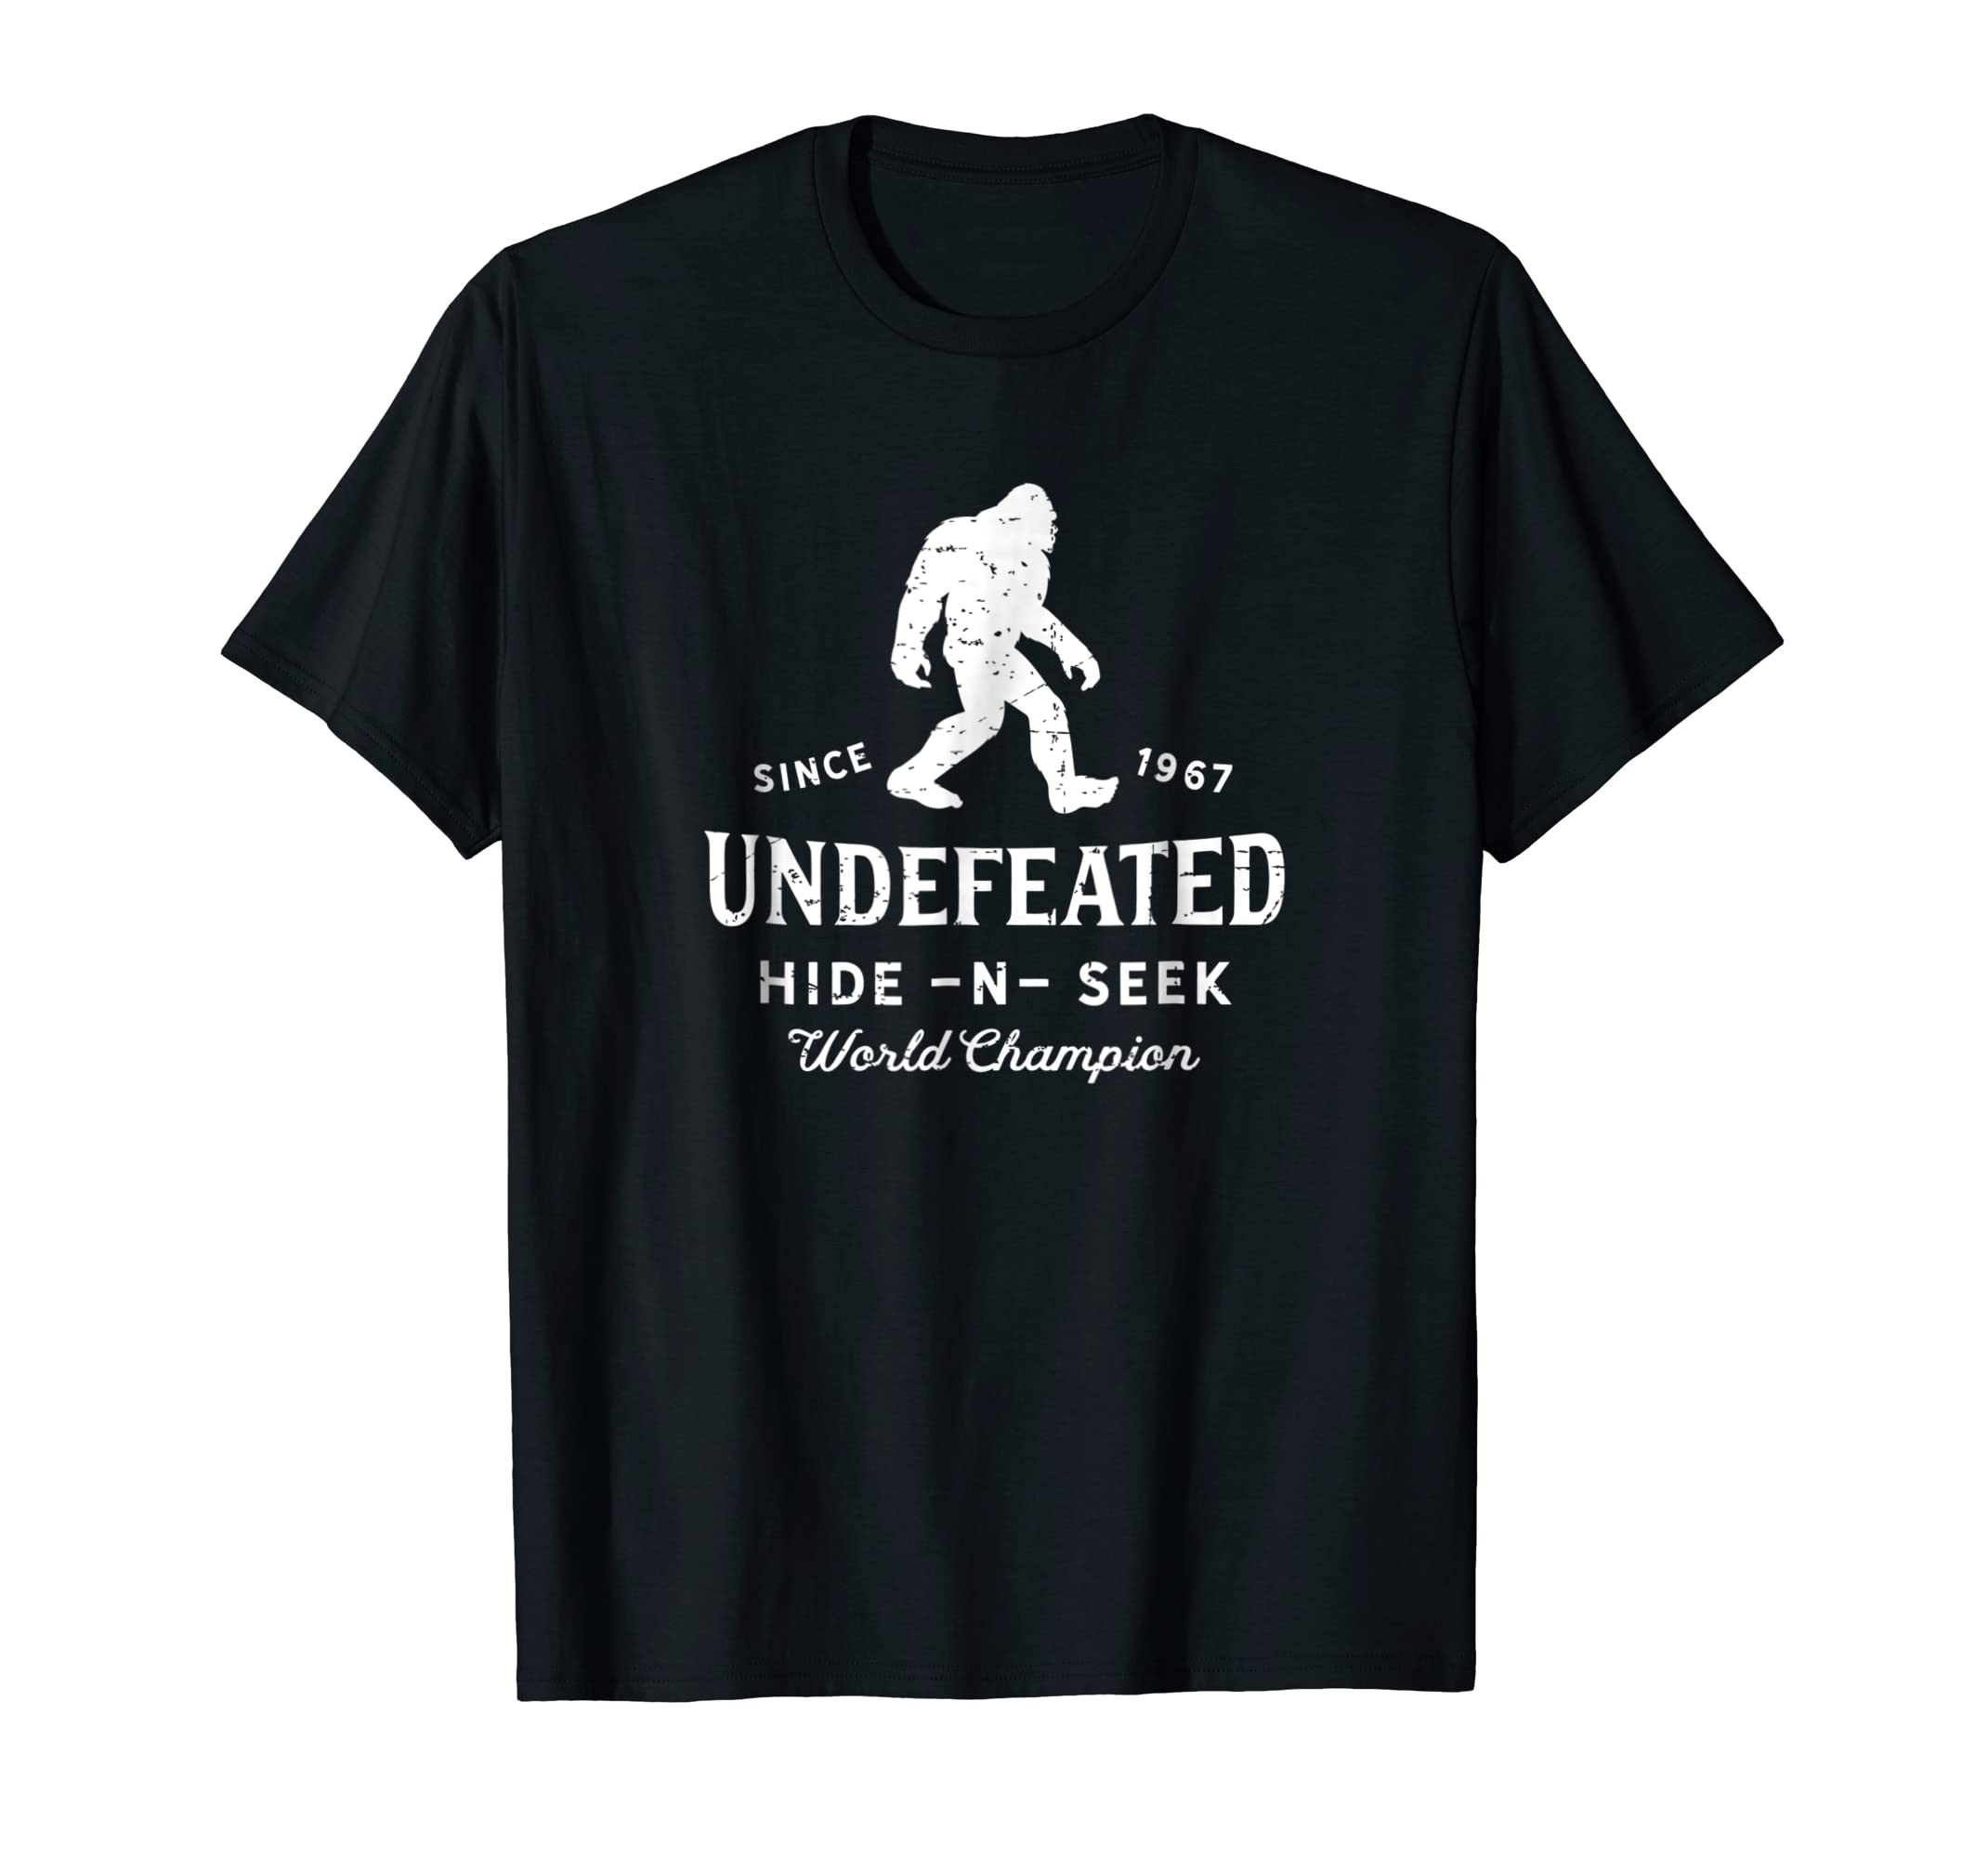 072d4b90 Amazon.com: Bigfoot Undefeated Hide and Seek Champion Distressed T-Shirt:  Clothing